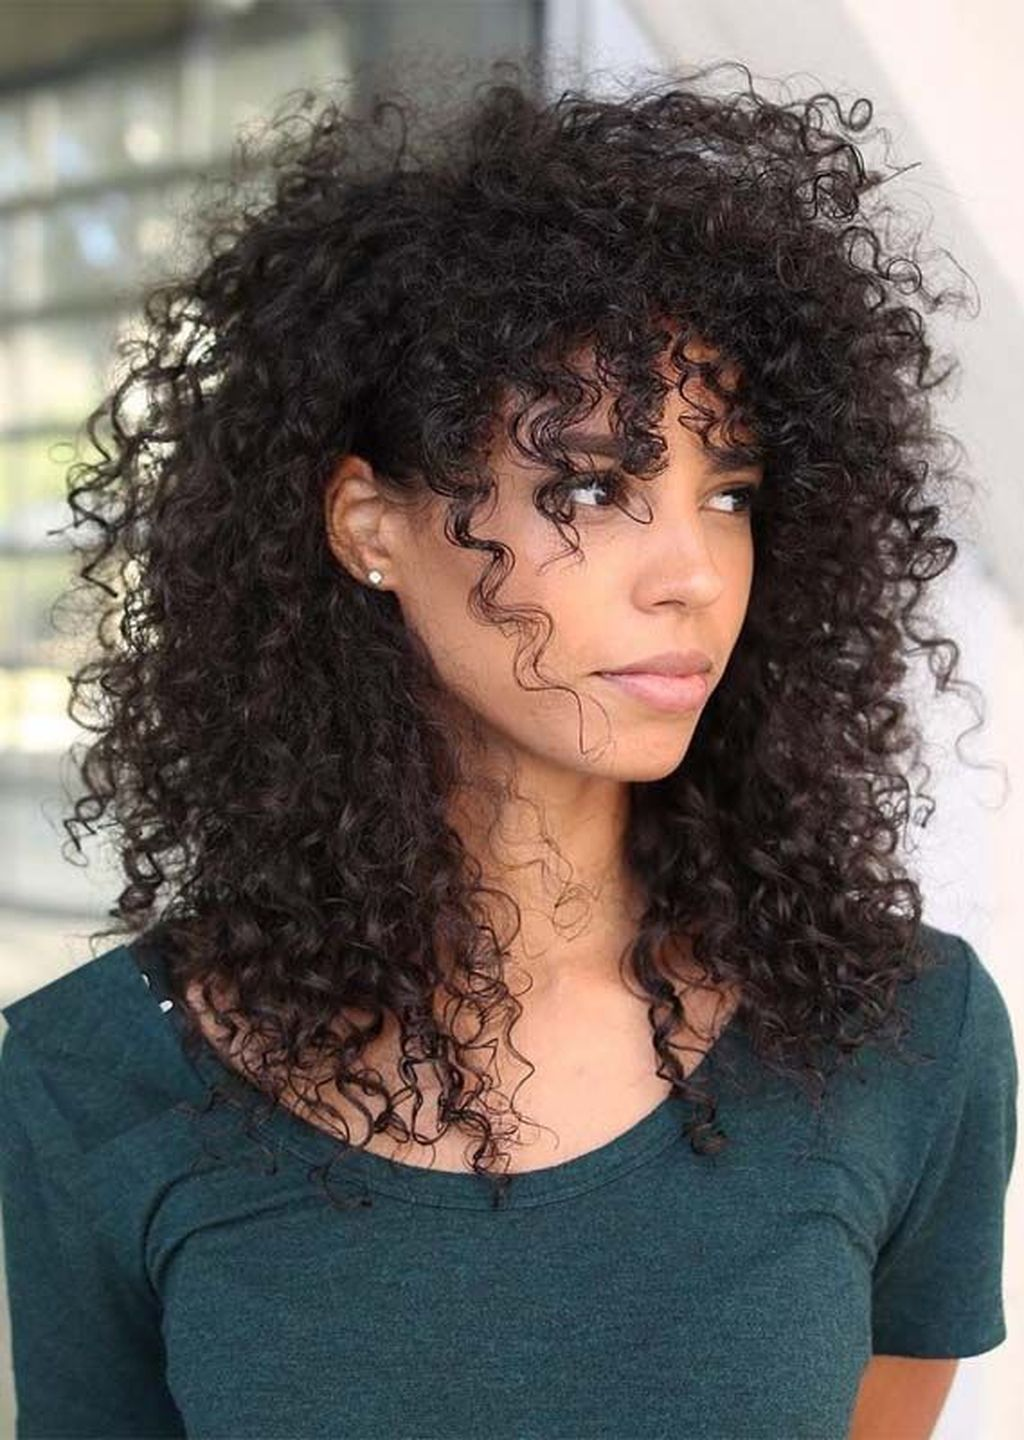 37 Inspiring Curly Hairstyles Ideas For Women #curlyhairstyles